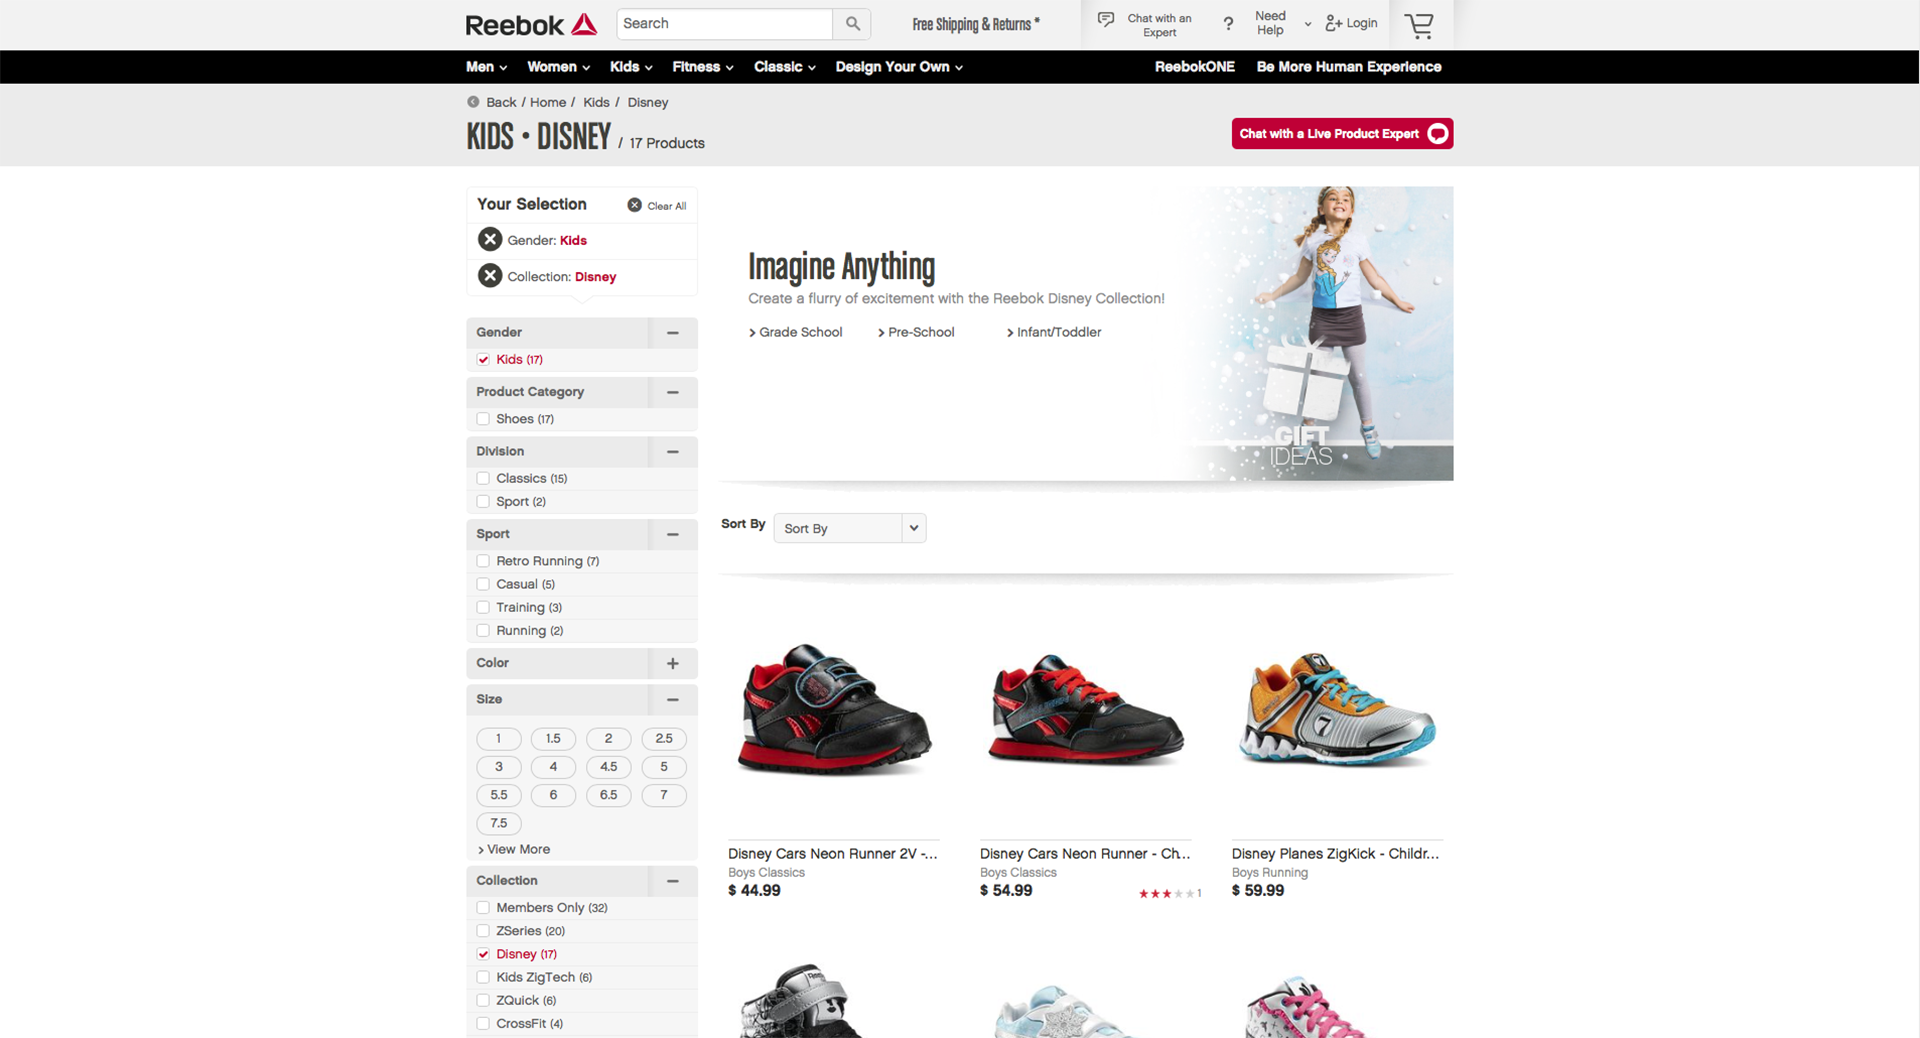 Imagery in use at Reebok.com